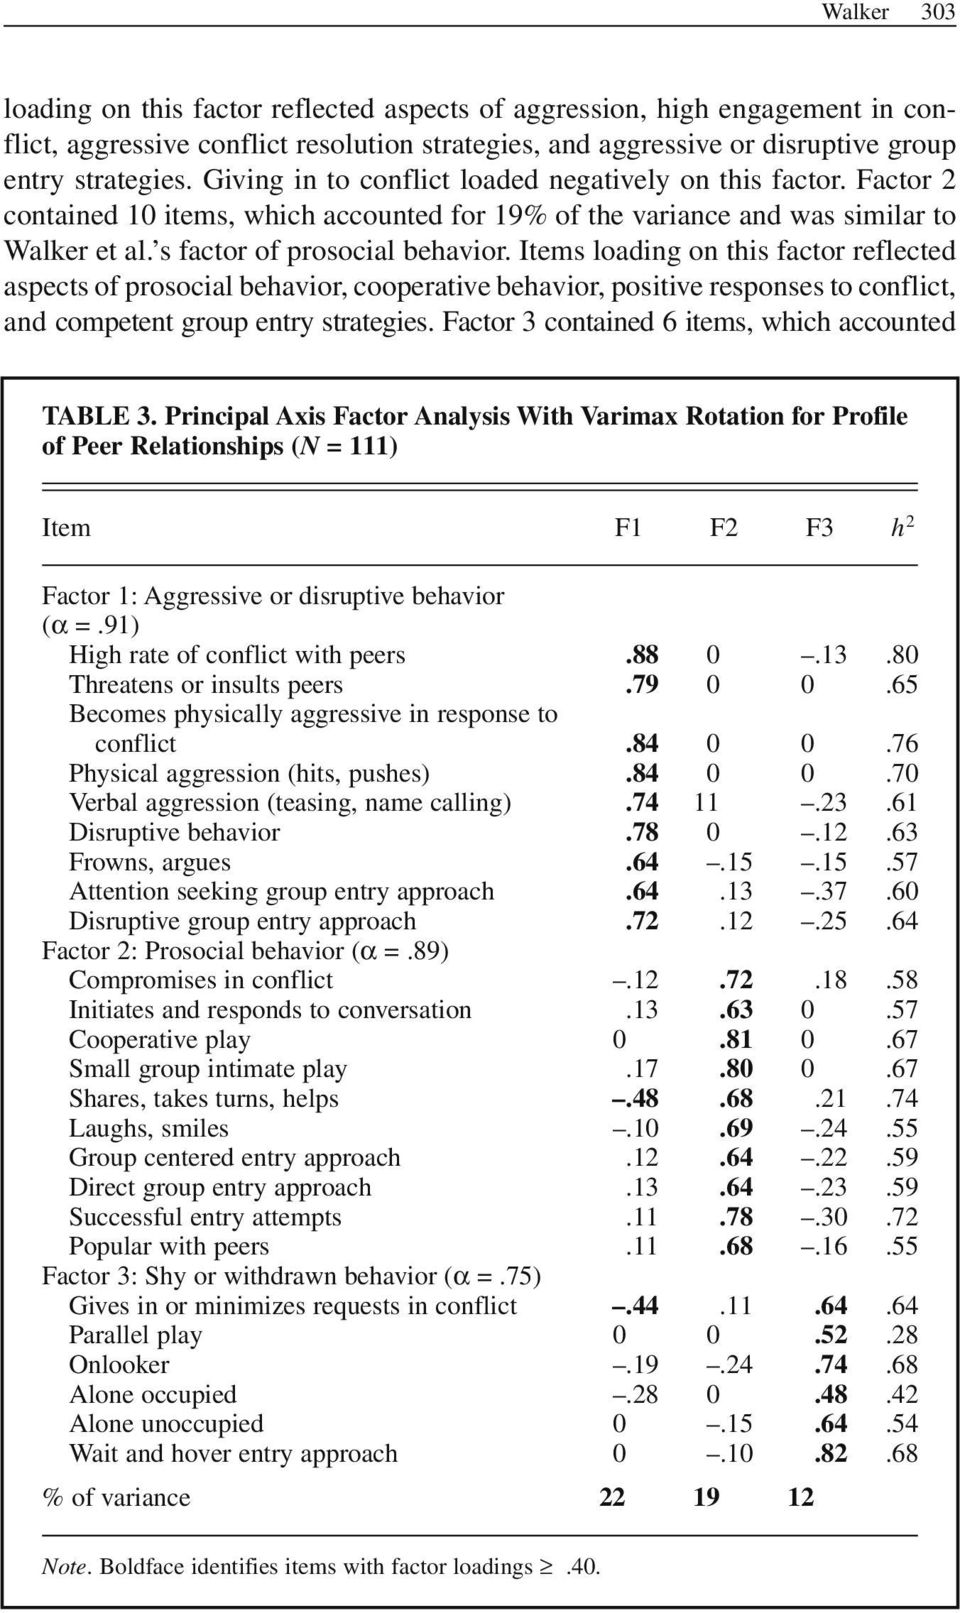 Items loading on this factor reflected aspects of prosocial behavior, cooperative behavior, positive responses to conflict, and competent group entry strategies.